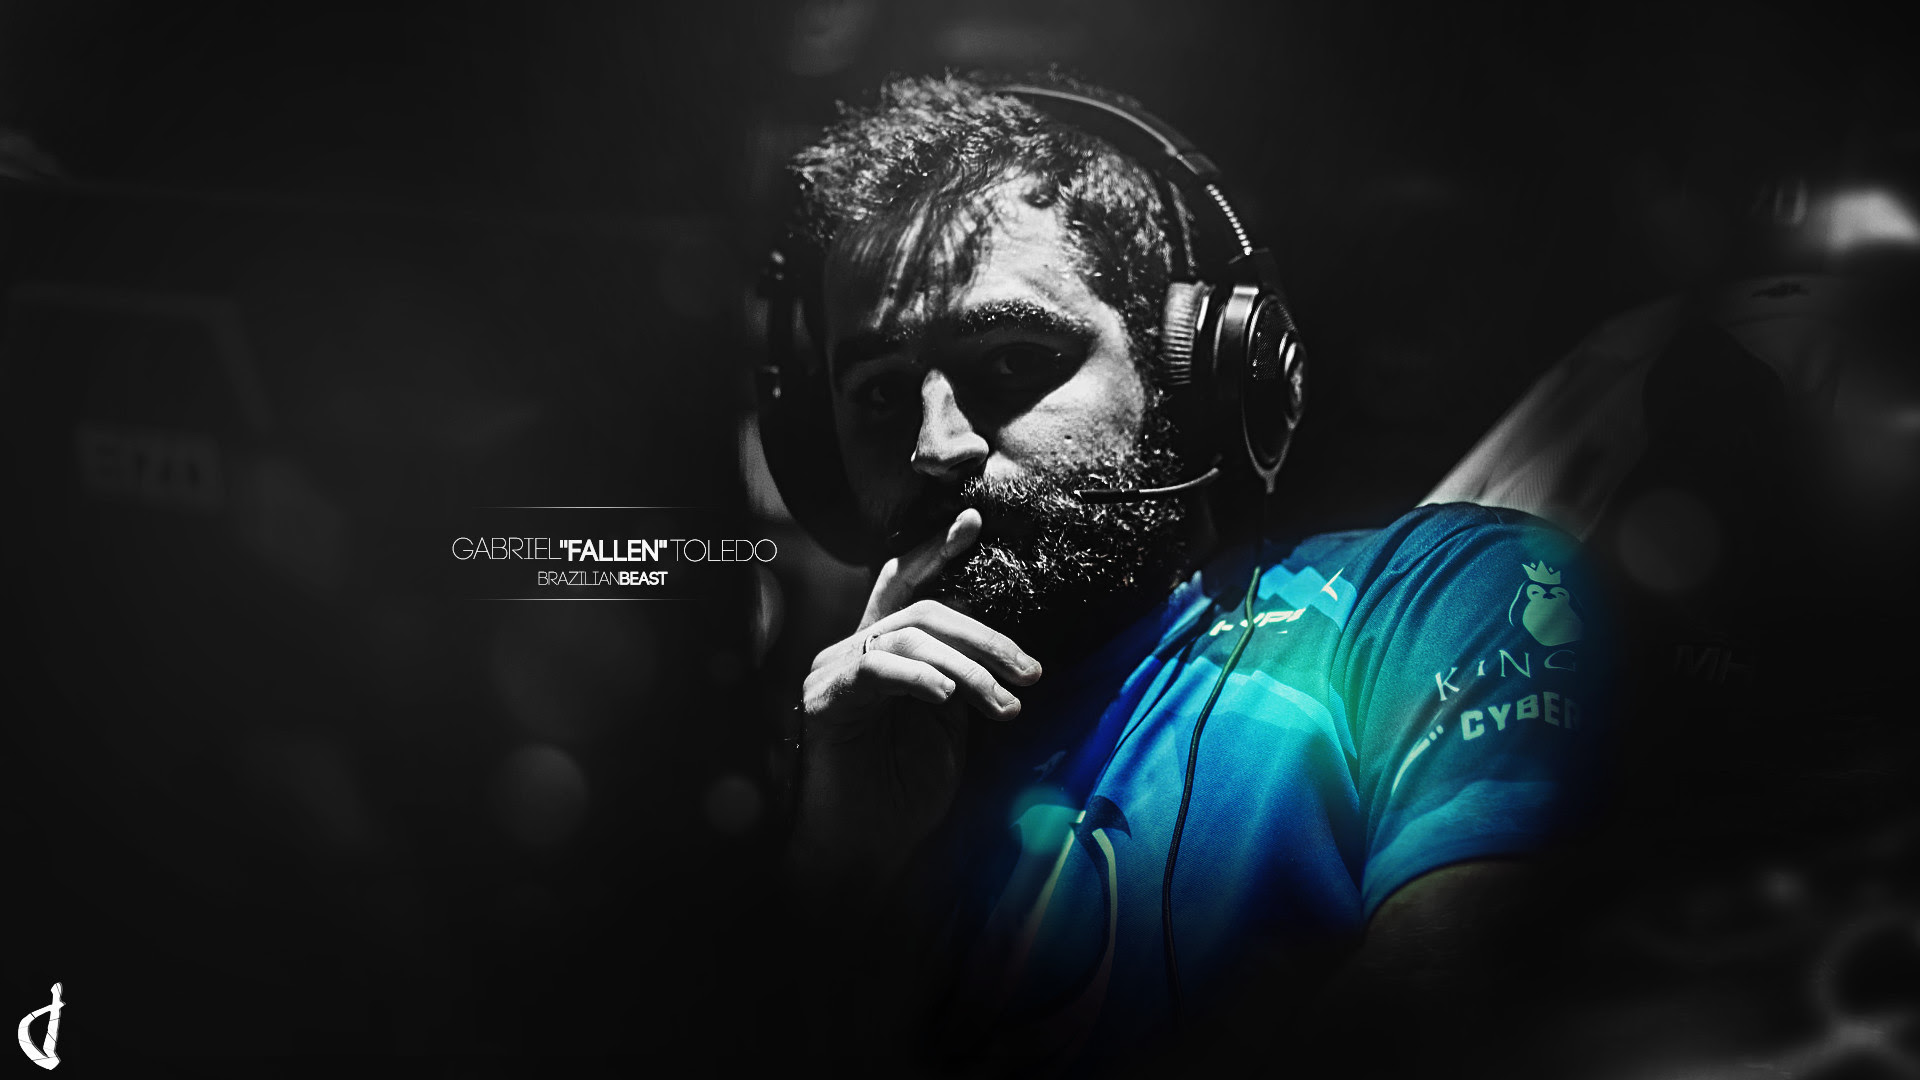 Cs Go Wallpaper 1080p (97+ images)